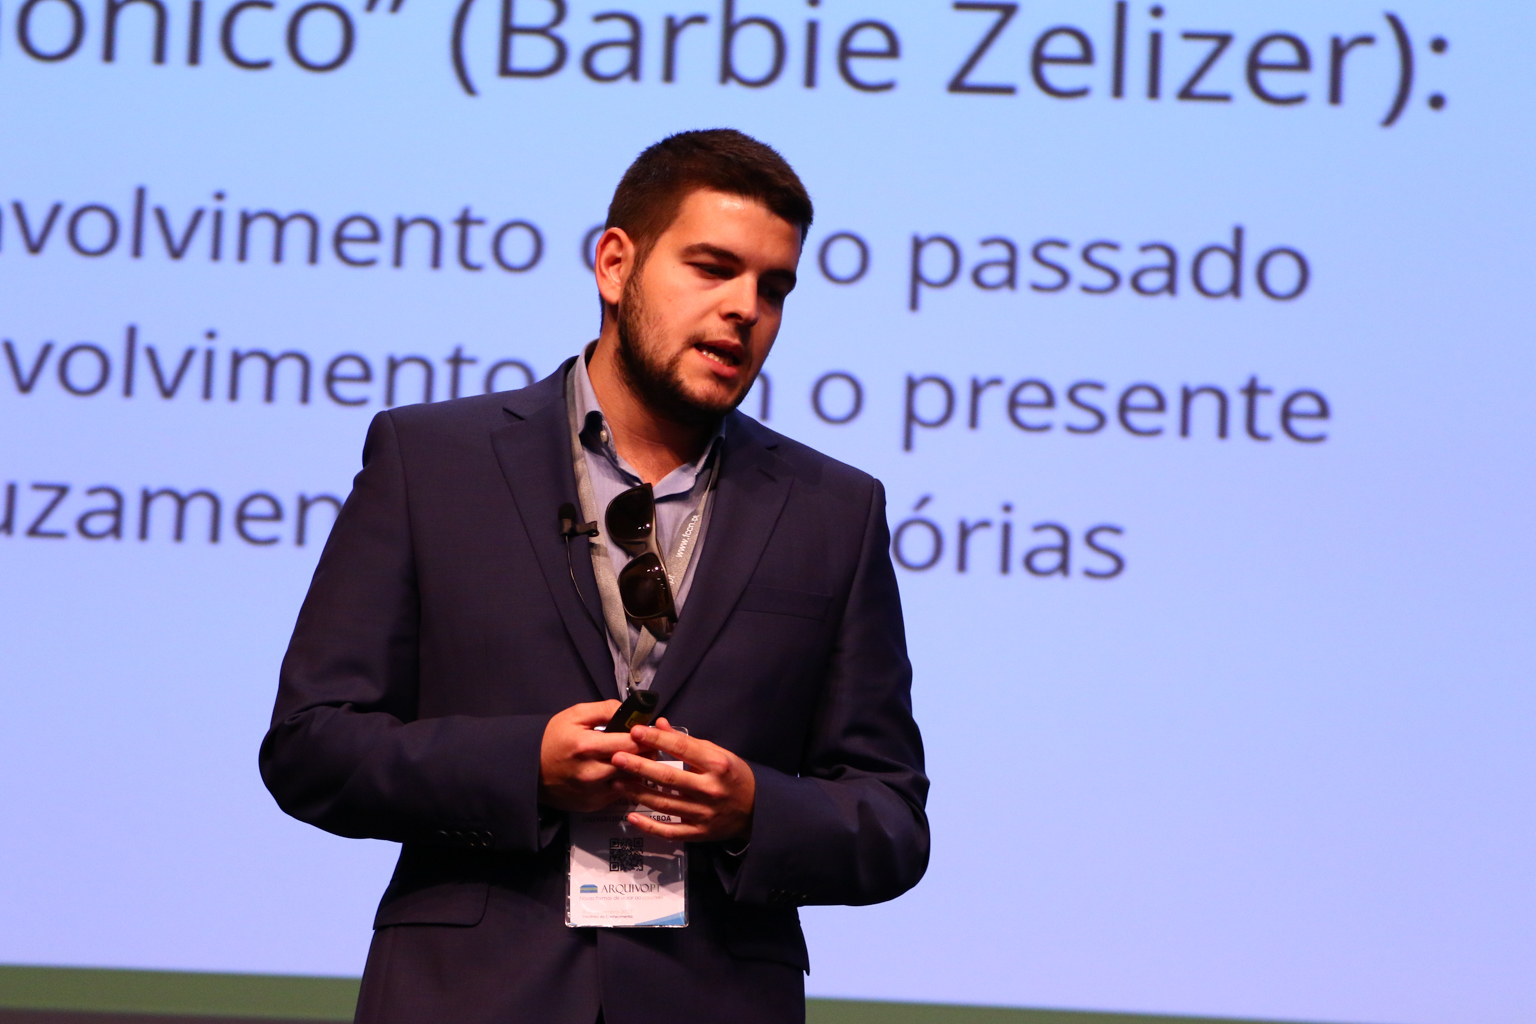 Diogo Cunha researcher on portuguese online news media using Arquivo.pt